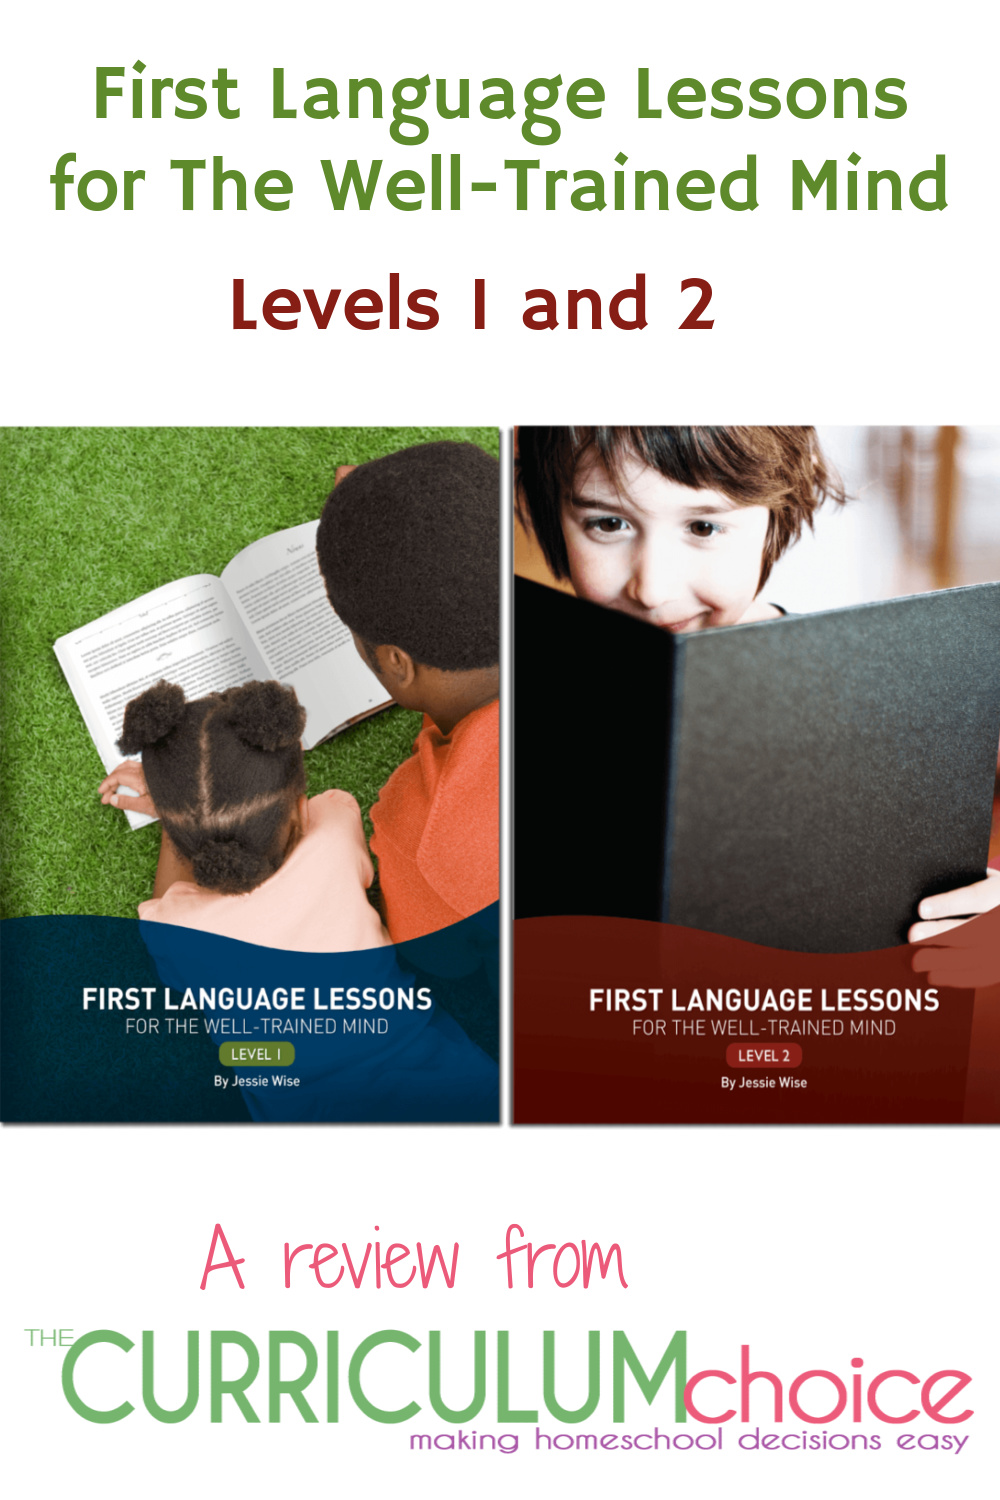 First Language Lessons for The Well-Trained Mind Levels 1 and 2 are scripted English curriculum books based in the Classical Education style of learning. A review from The Curriculum Choice